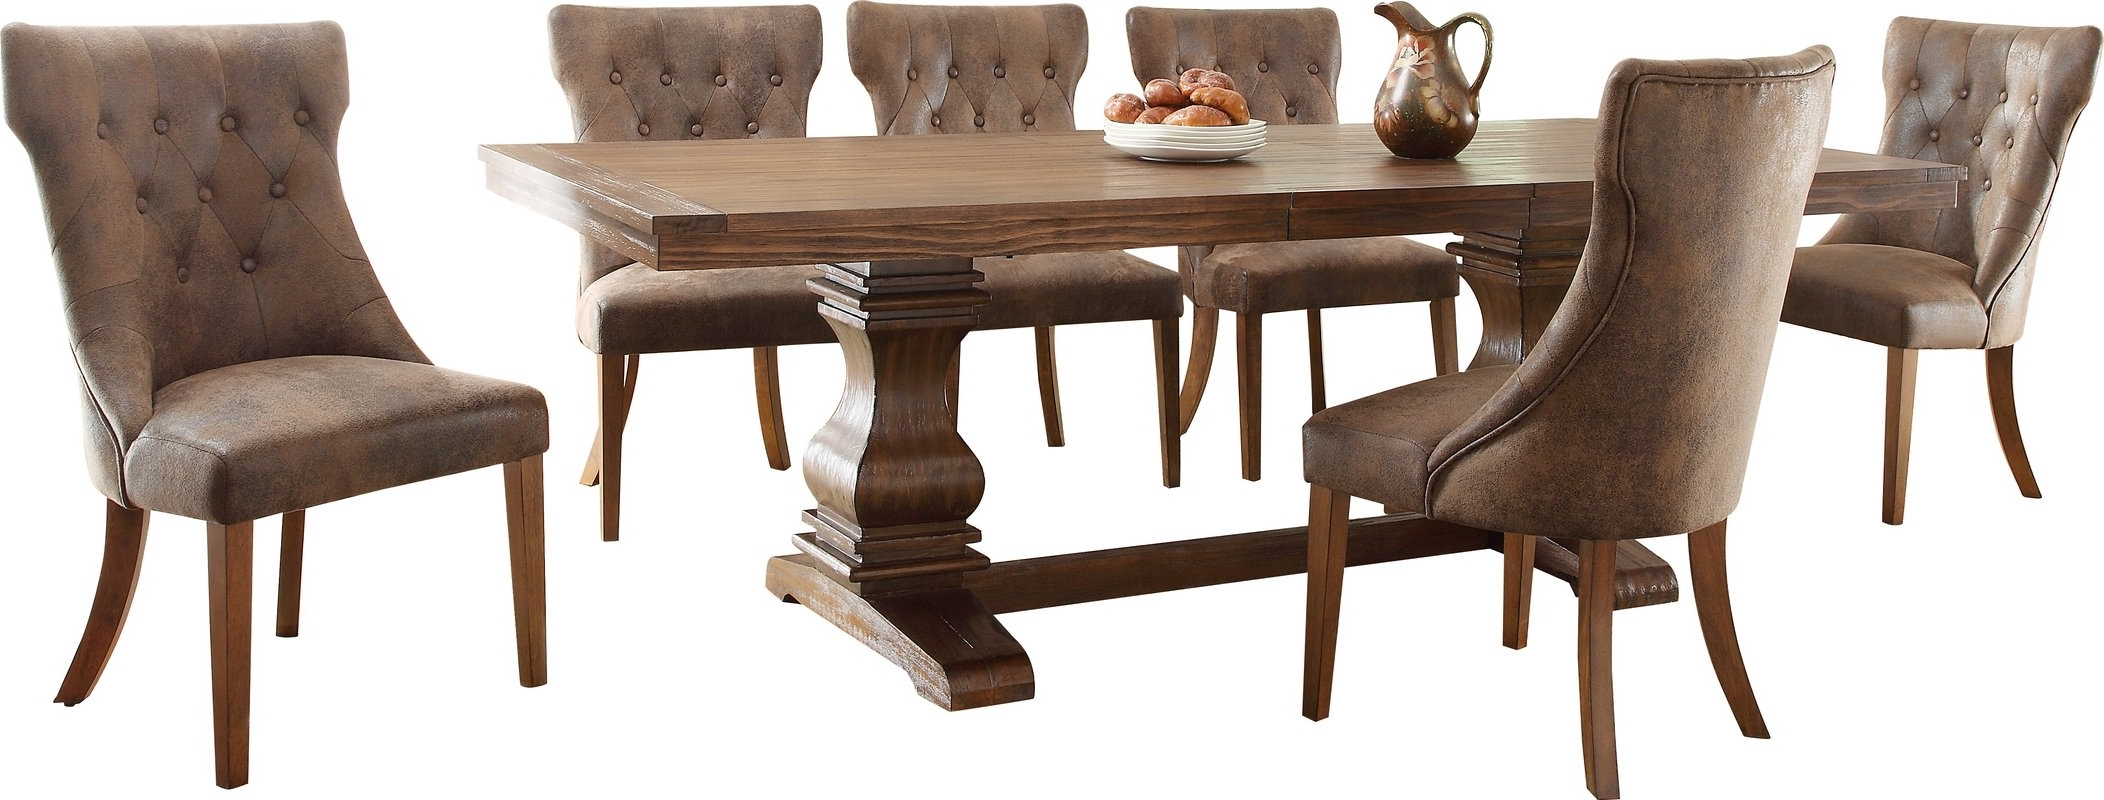 Dark Wooden Dining Tables Regarding Most Popular Selecting Dark Wood Round Dining Tables – Home Decor Ideas (View 11 of 25)